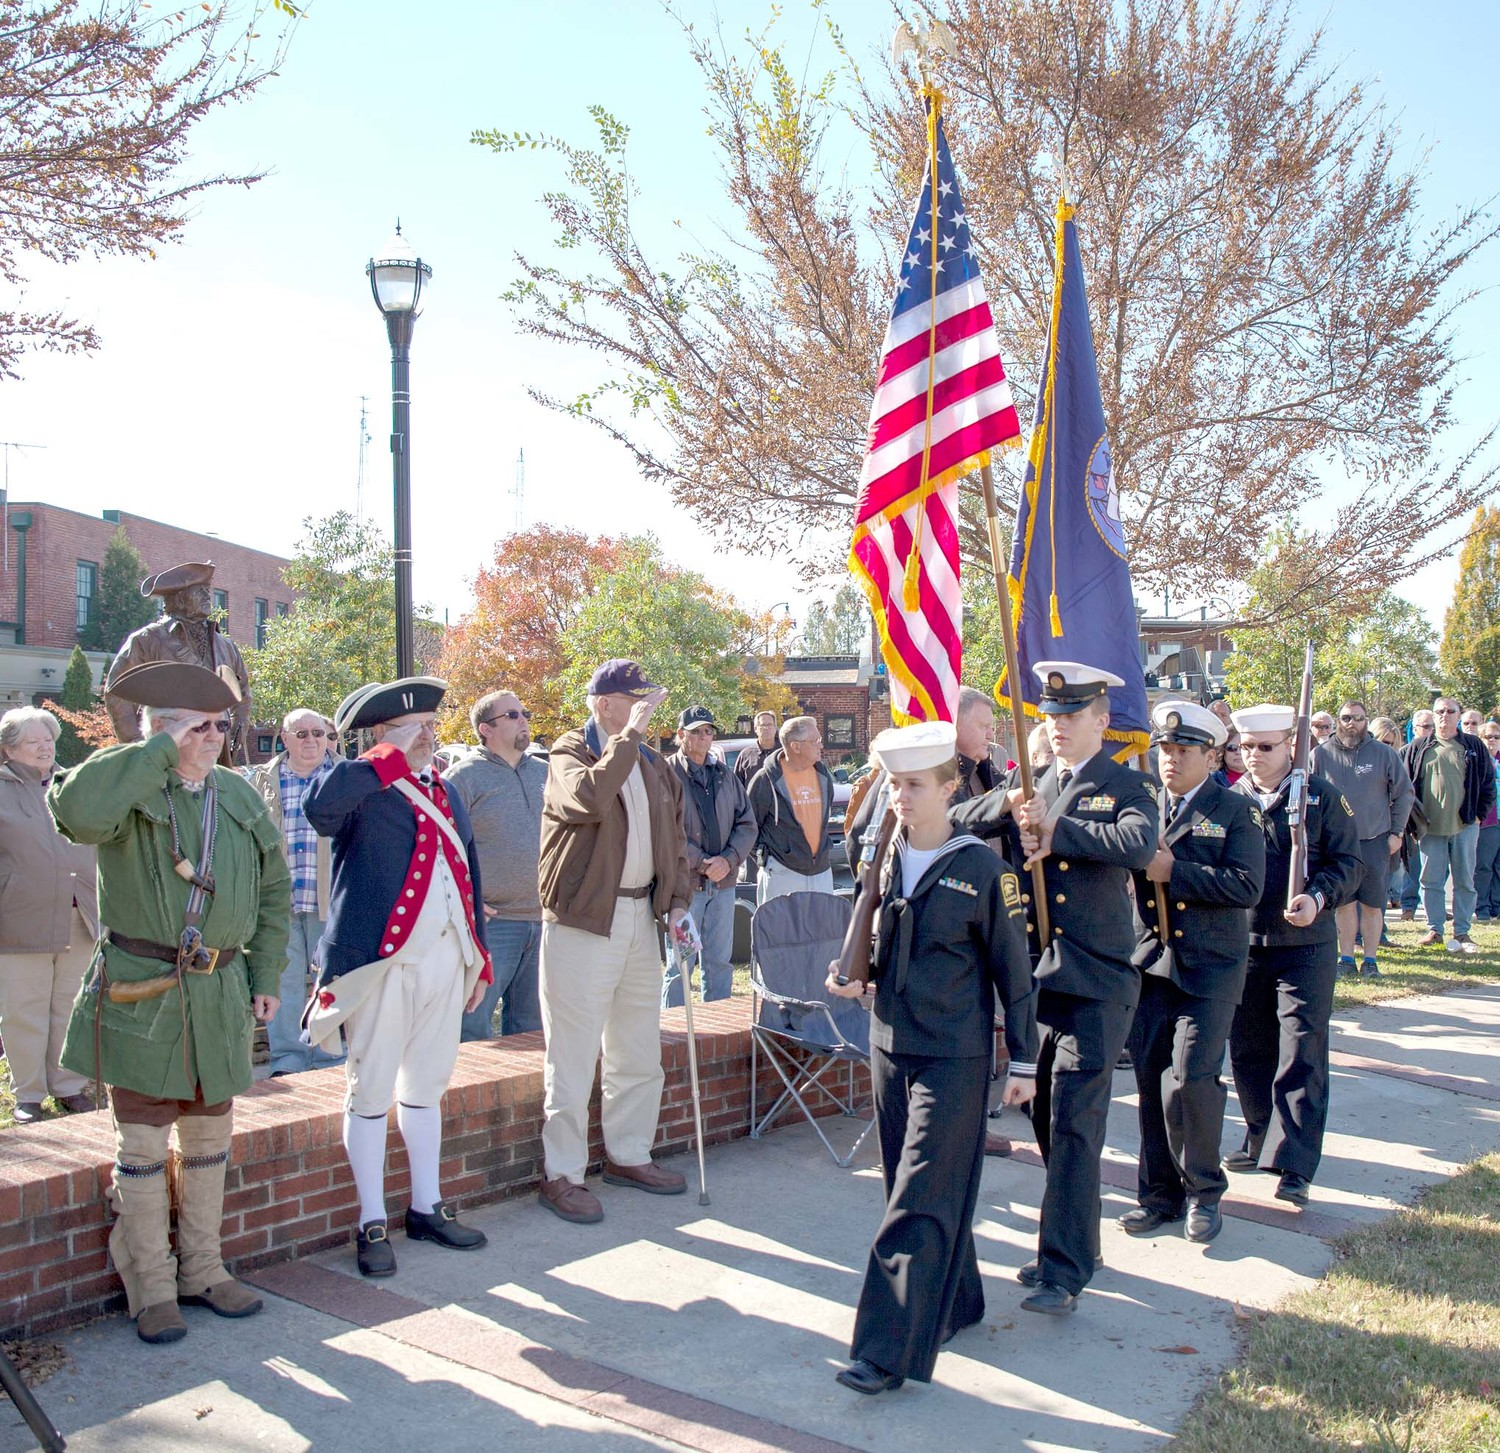 THE U.S. NAVAL SEA CADETS, Chattanooga Division Color Guard post the colors at Saturday's Veterans Day program at 1st Street Square.